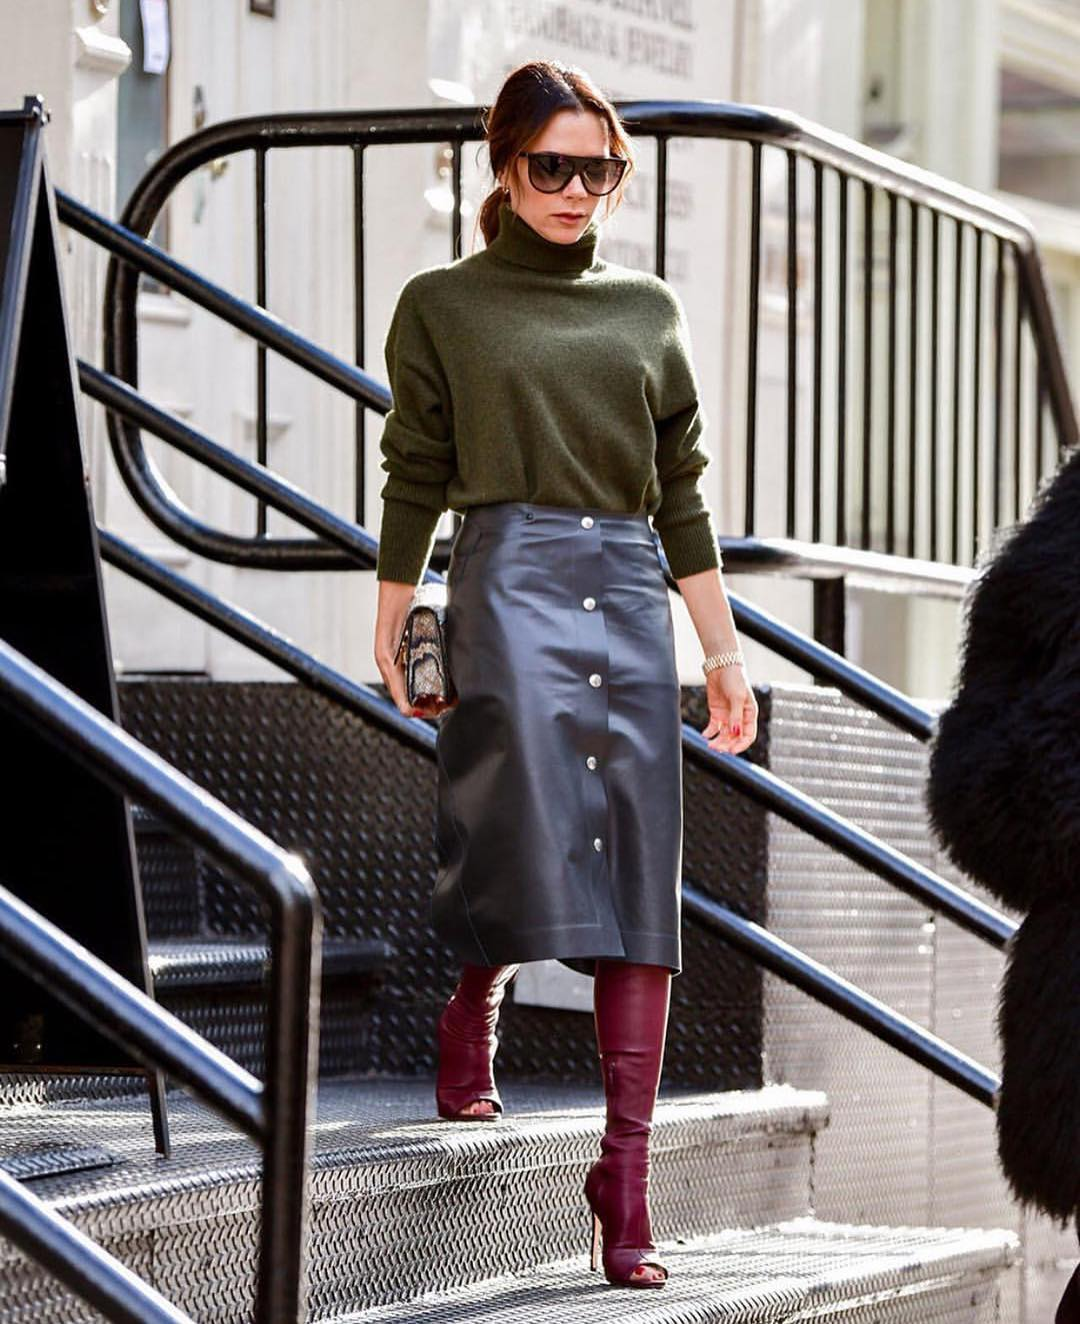 Front Buttoned Midi Leather Skirt With Olive Green Turtleneck For Fall Days 2019